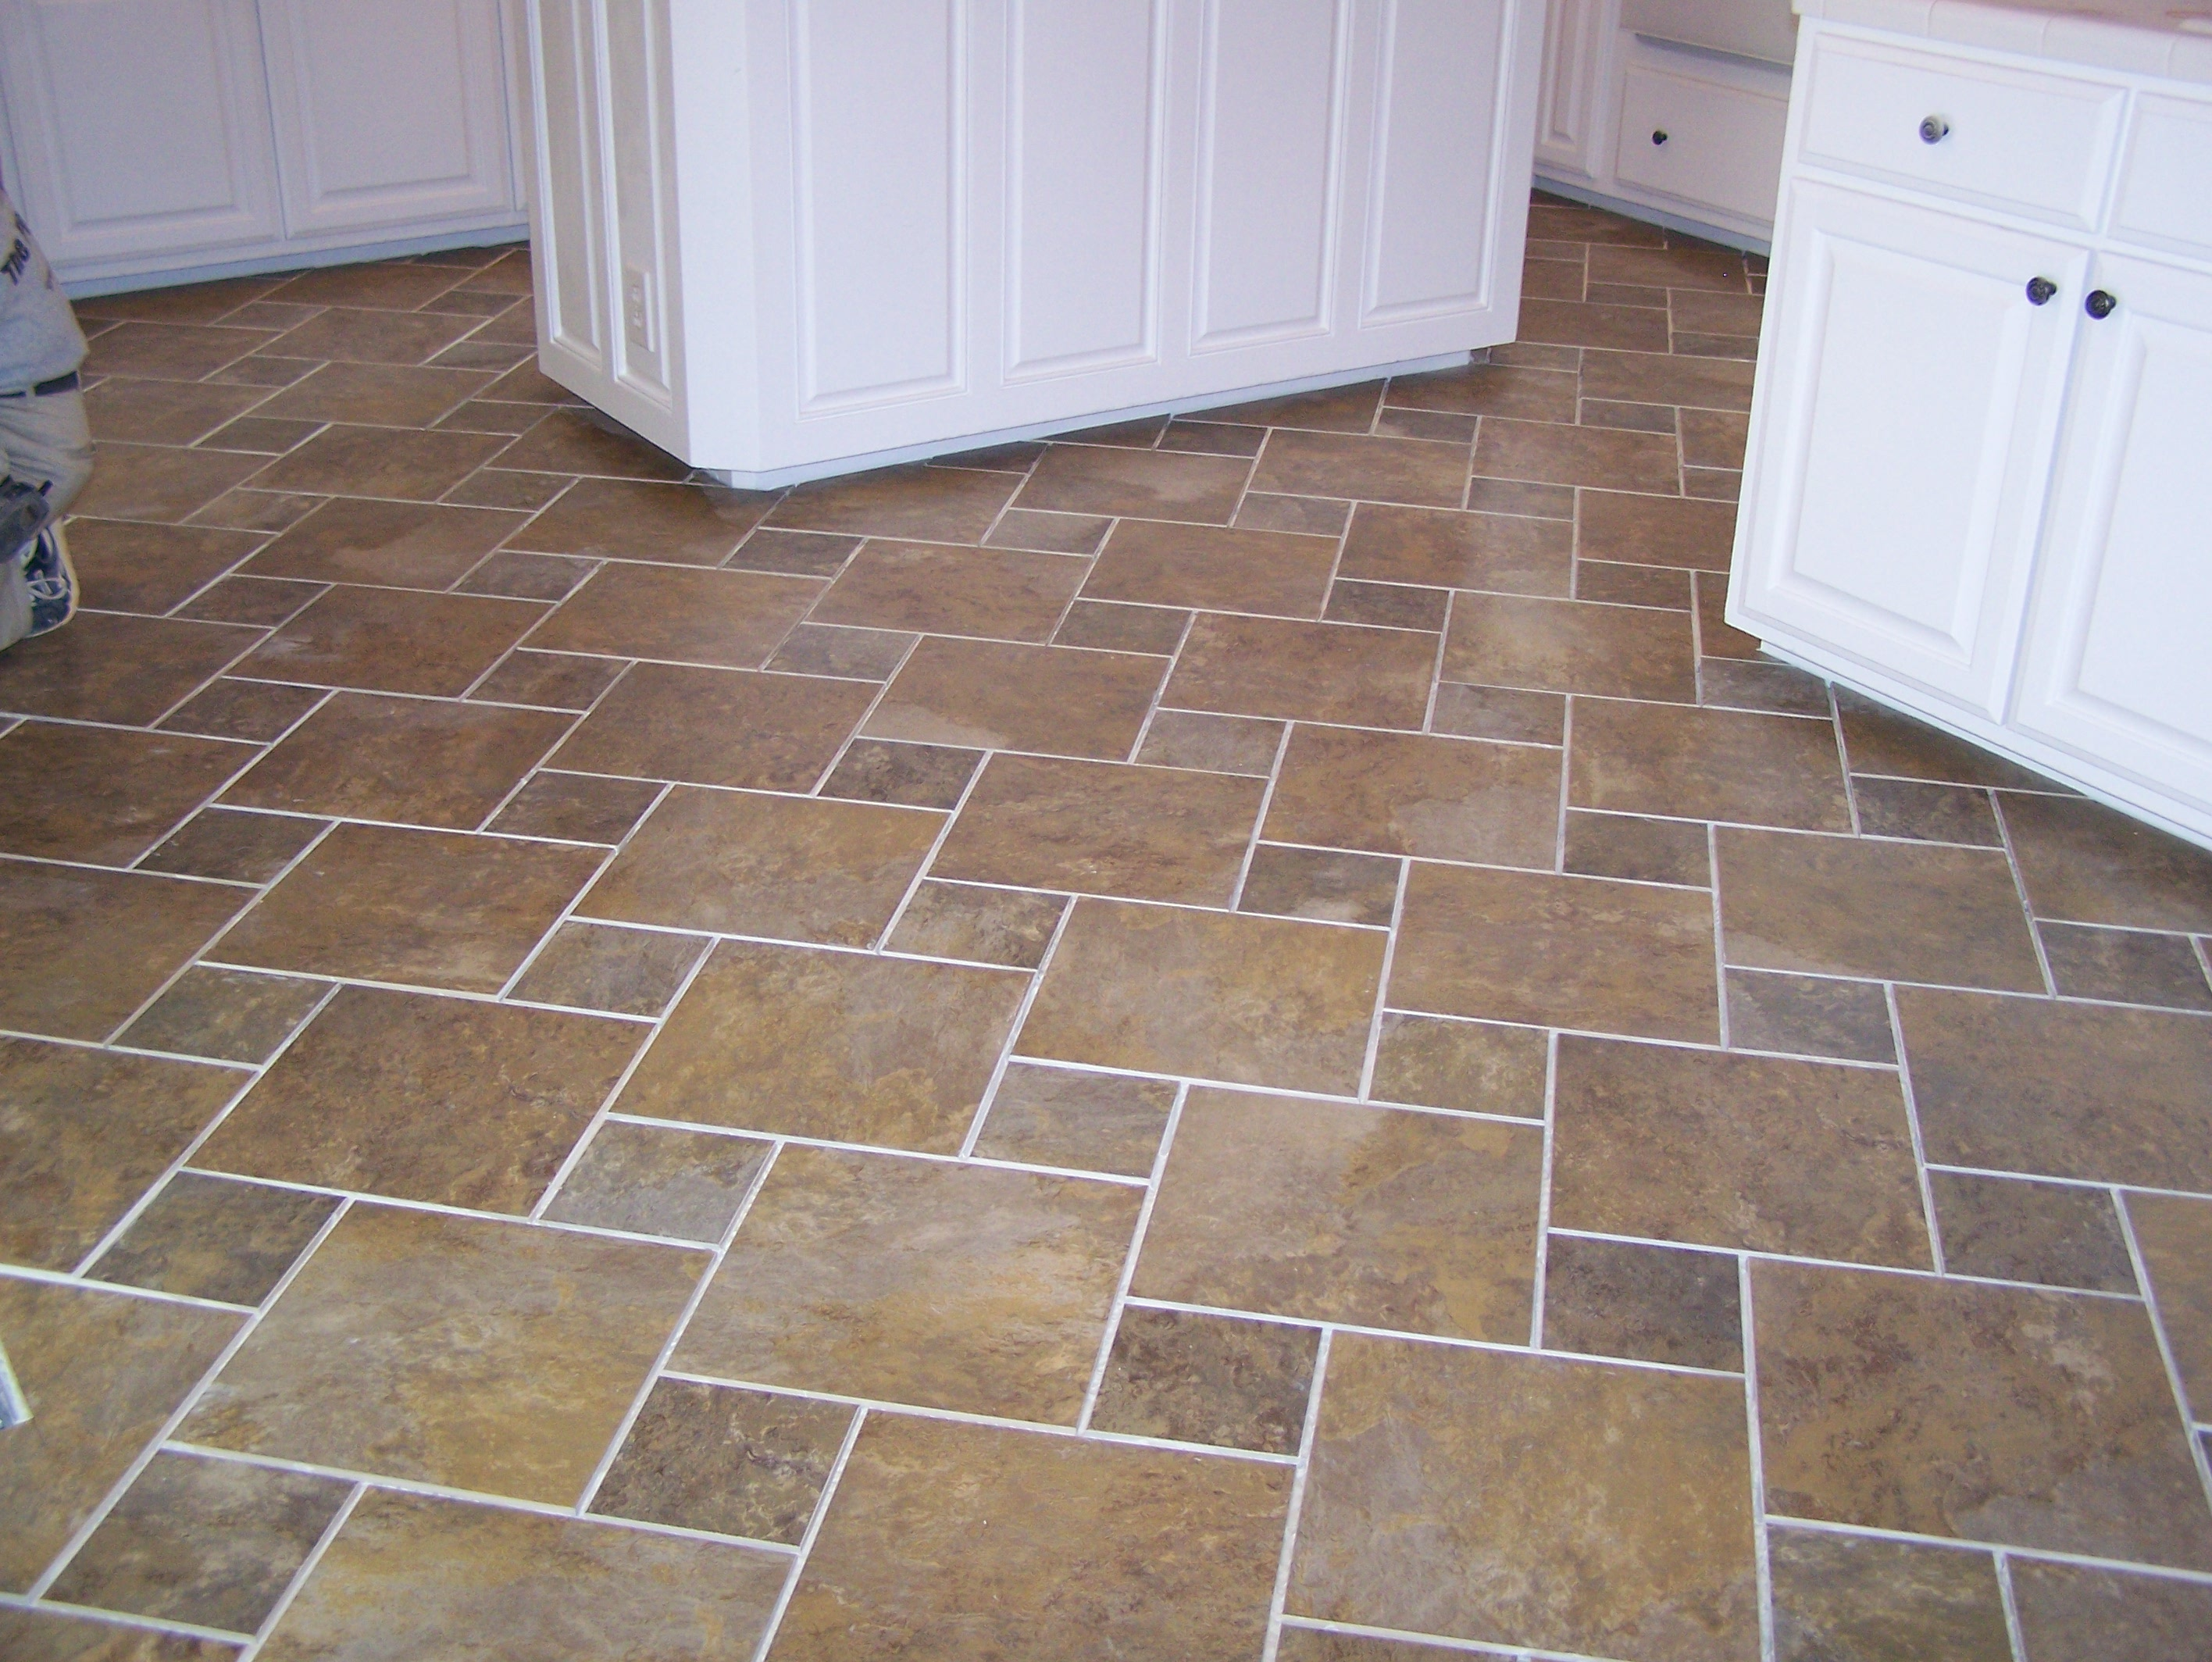 u-decorative-ceramic-floor-tile-cracking-ceramic-floor-tile-edging-ceramic-floor-tile-expansion-joints-ceramic-floor-tile-ebay-ceramic-floor-tile-edmonton-ceramic-floor-tile-edge-trim-c